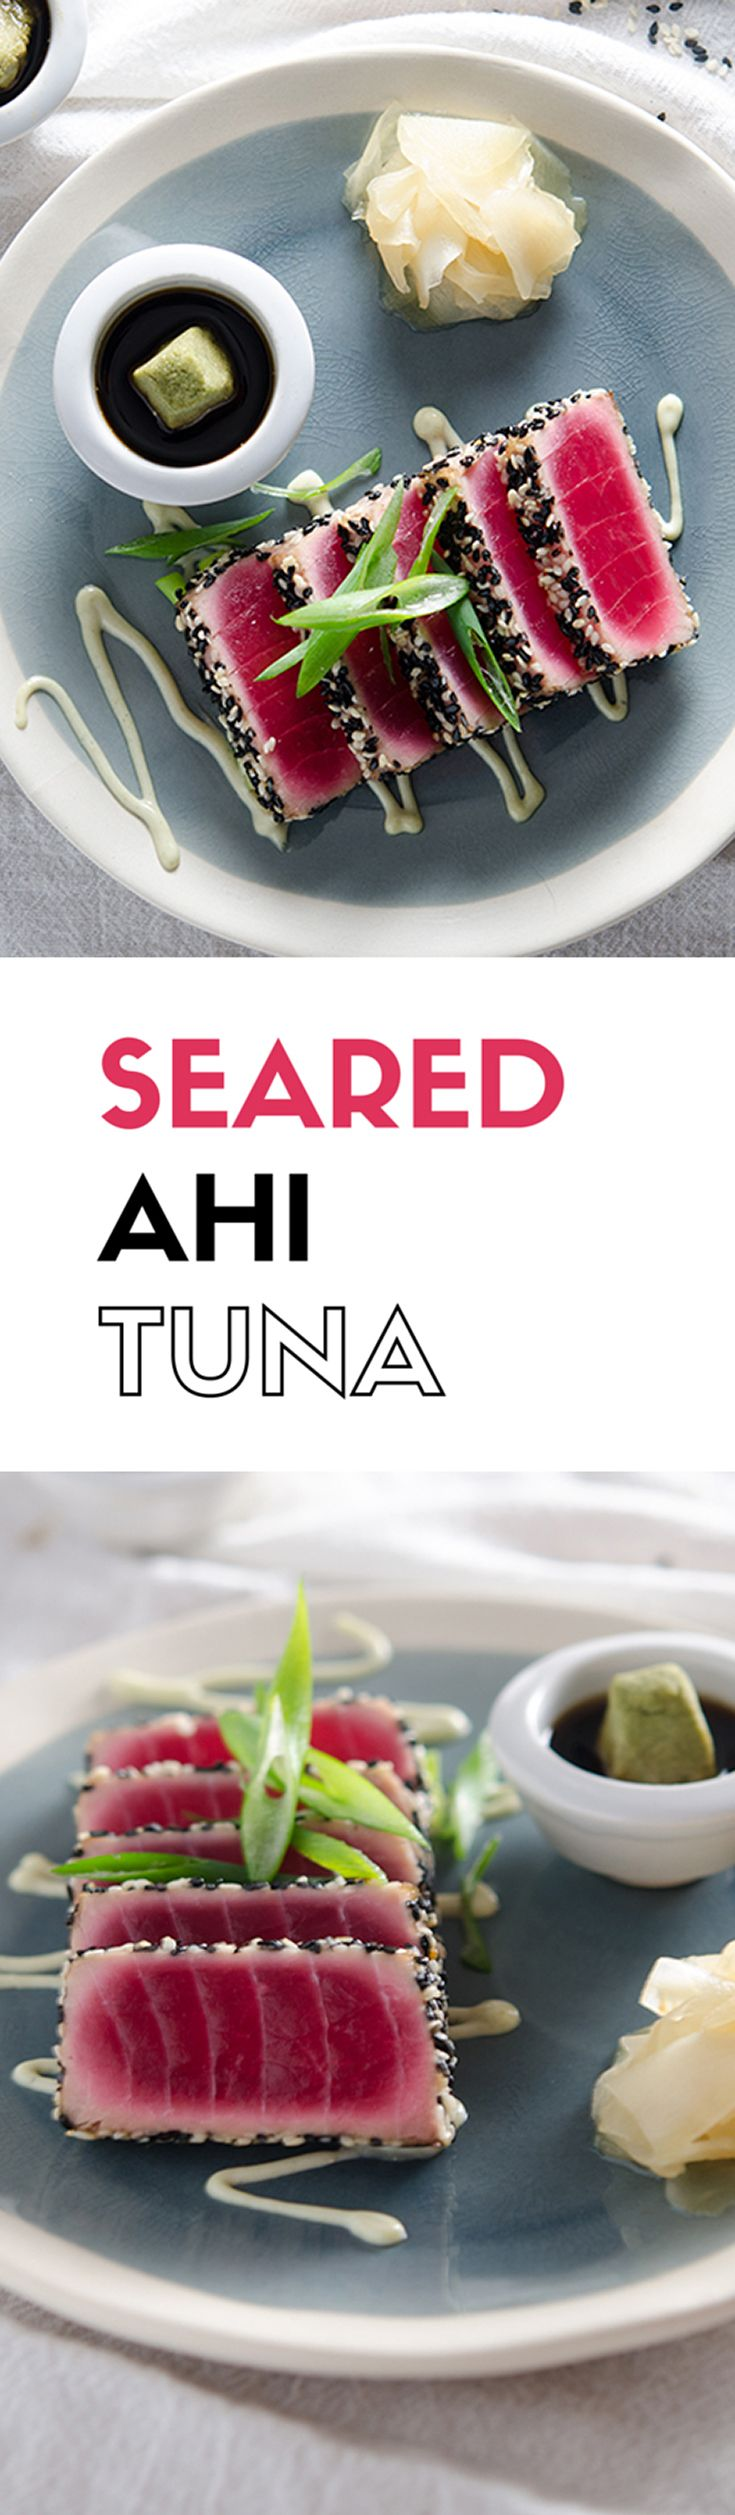 The best part of this recipe is looking through the translucent pink, stained glass window-like tuna after it has been seared and sliced. So beautiful it almost makes you not want to eat it… Almost.